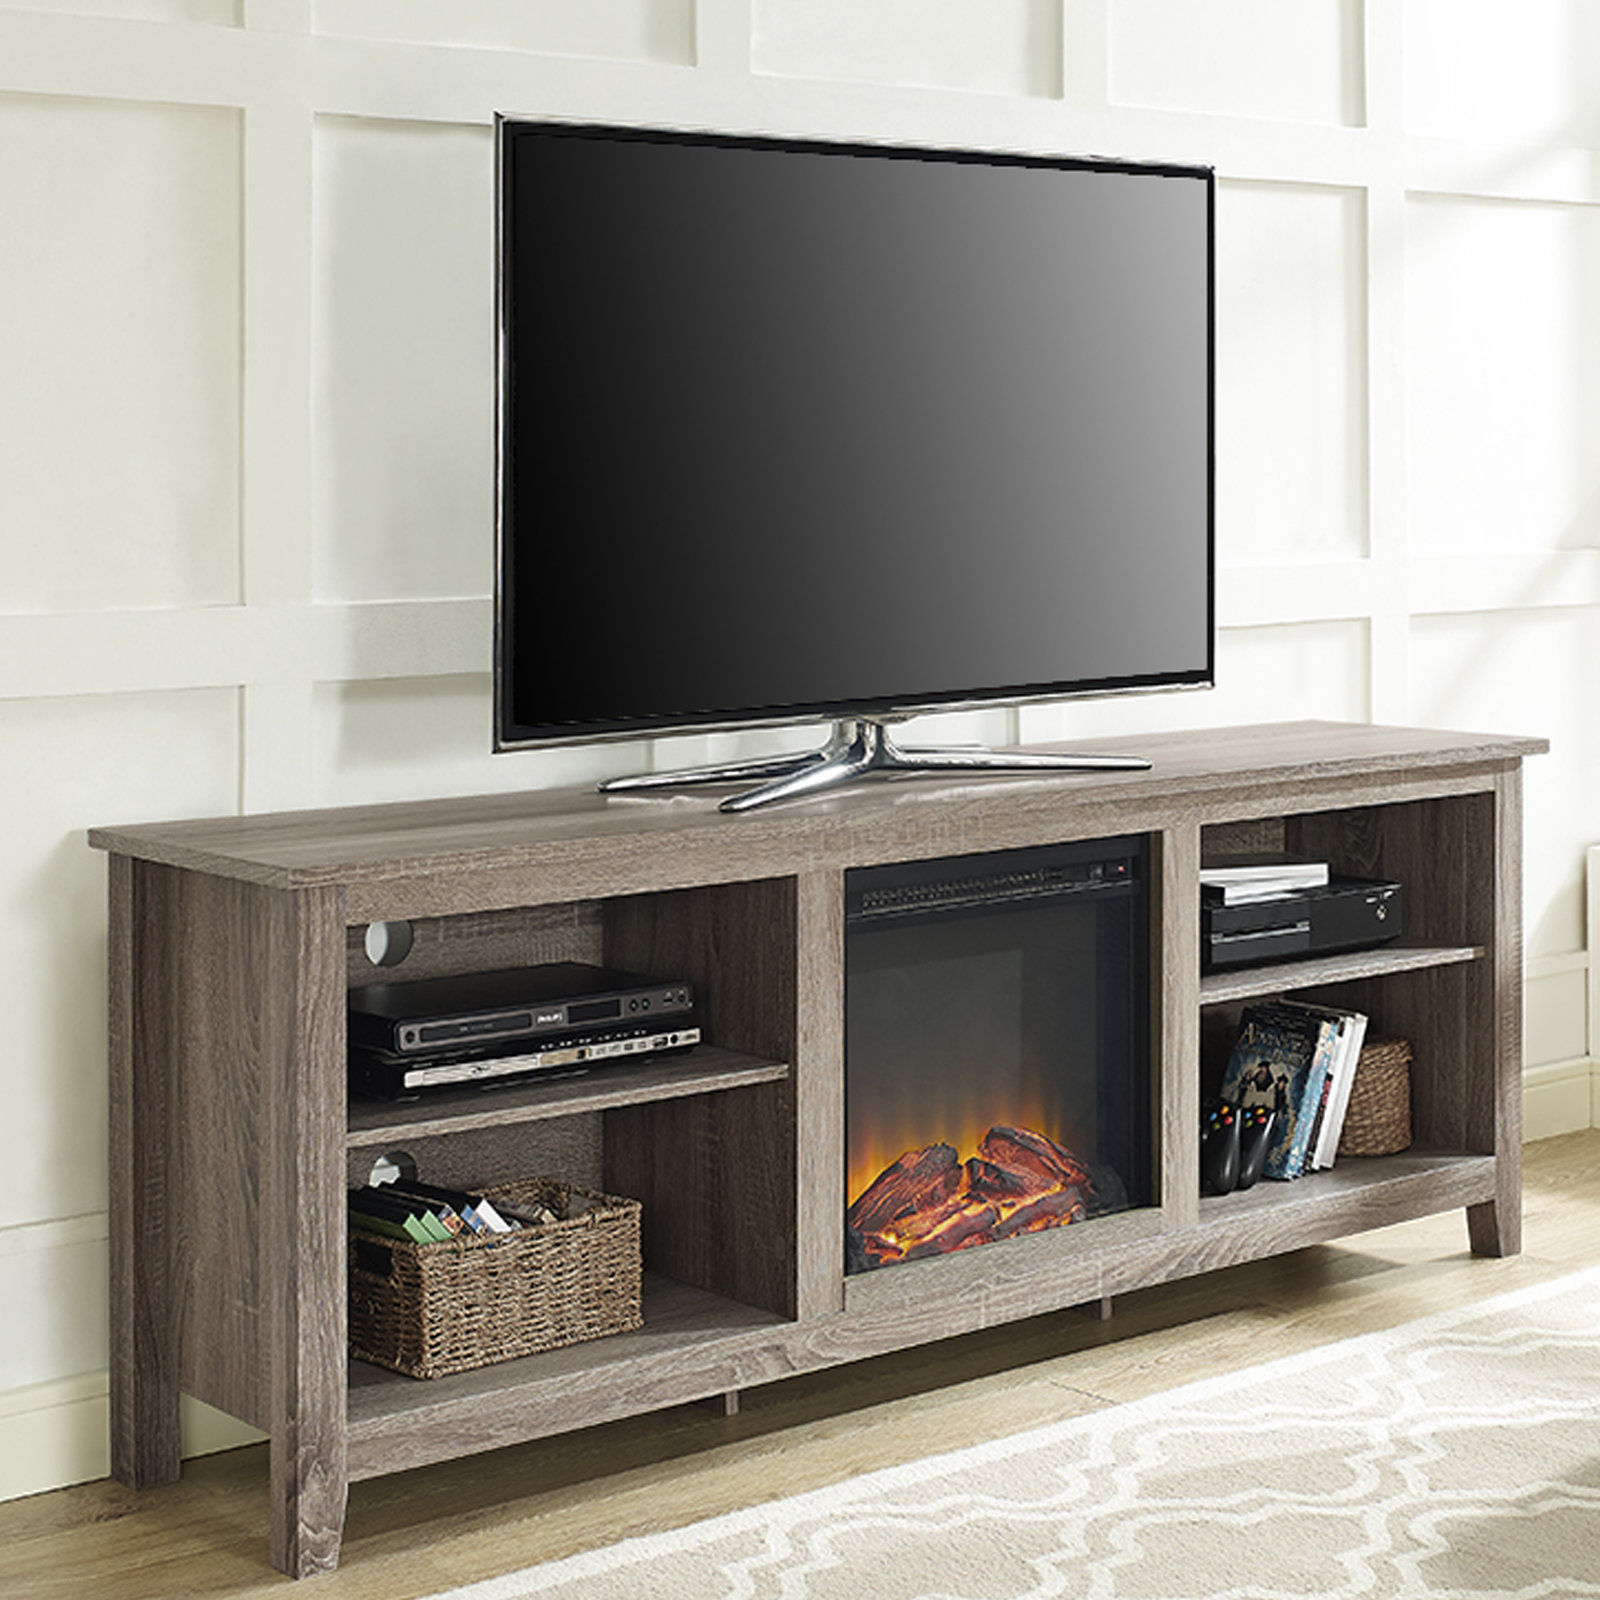 Fireplace Tv Stands & Entertainment Centers You'll Love | Wayfair.ca with Sinclair Blue 74 Inch Tv Stands (Image 12 of 30)